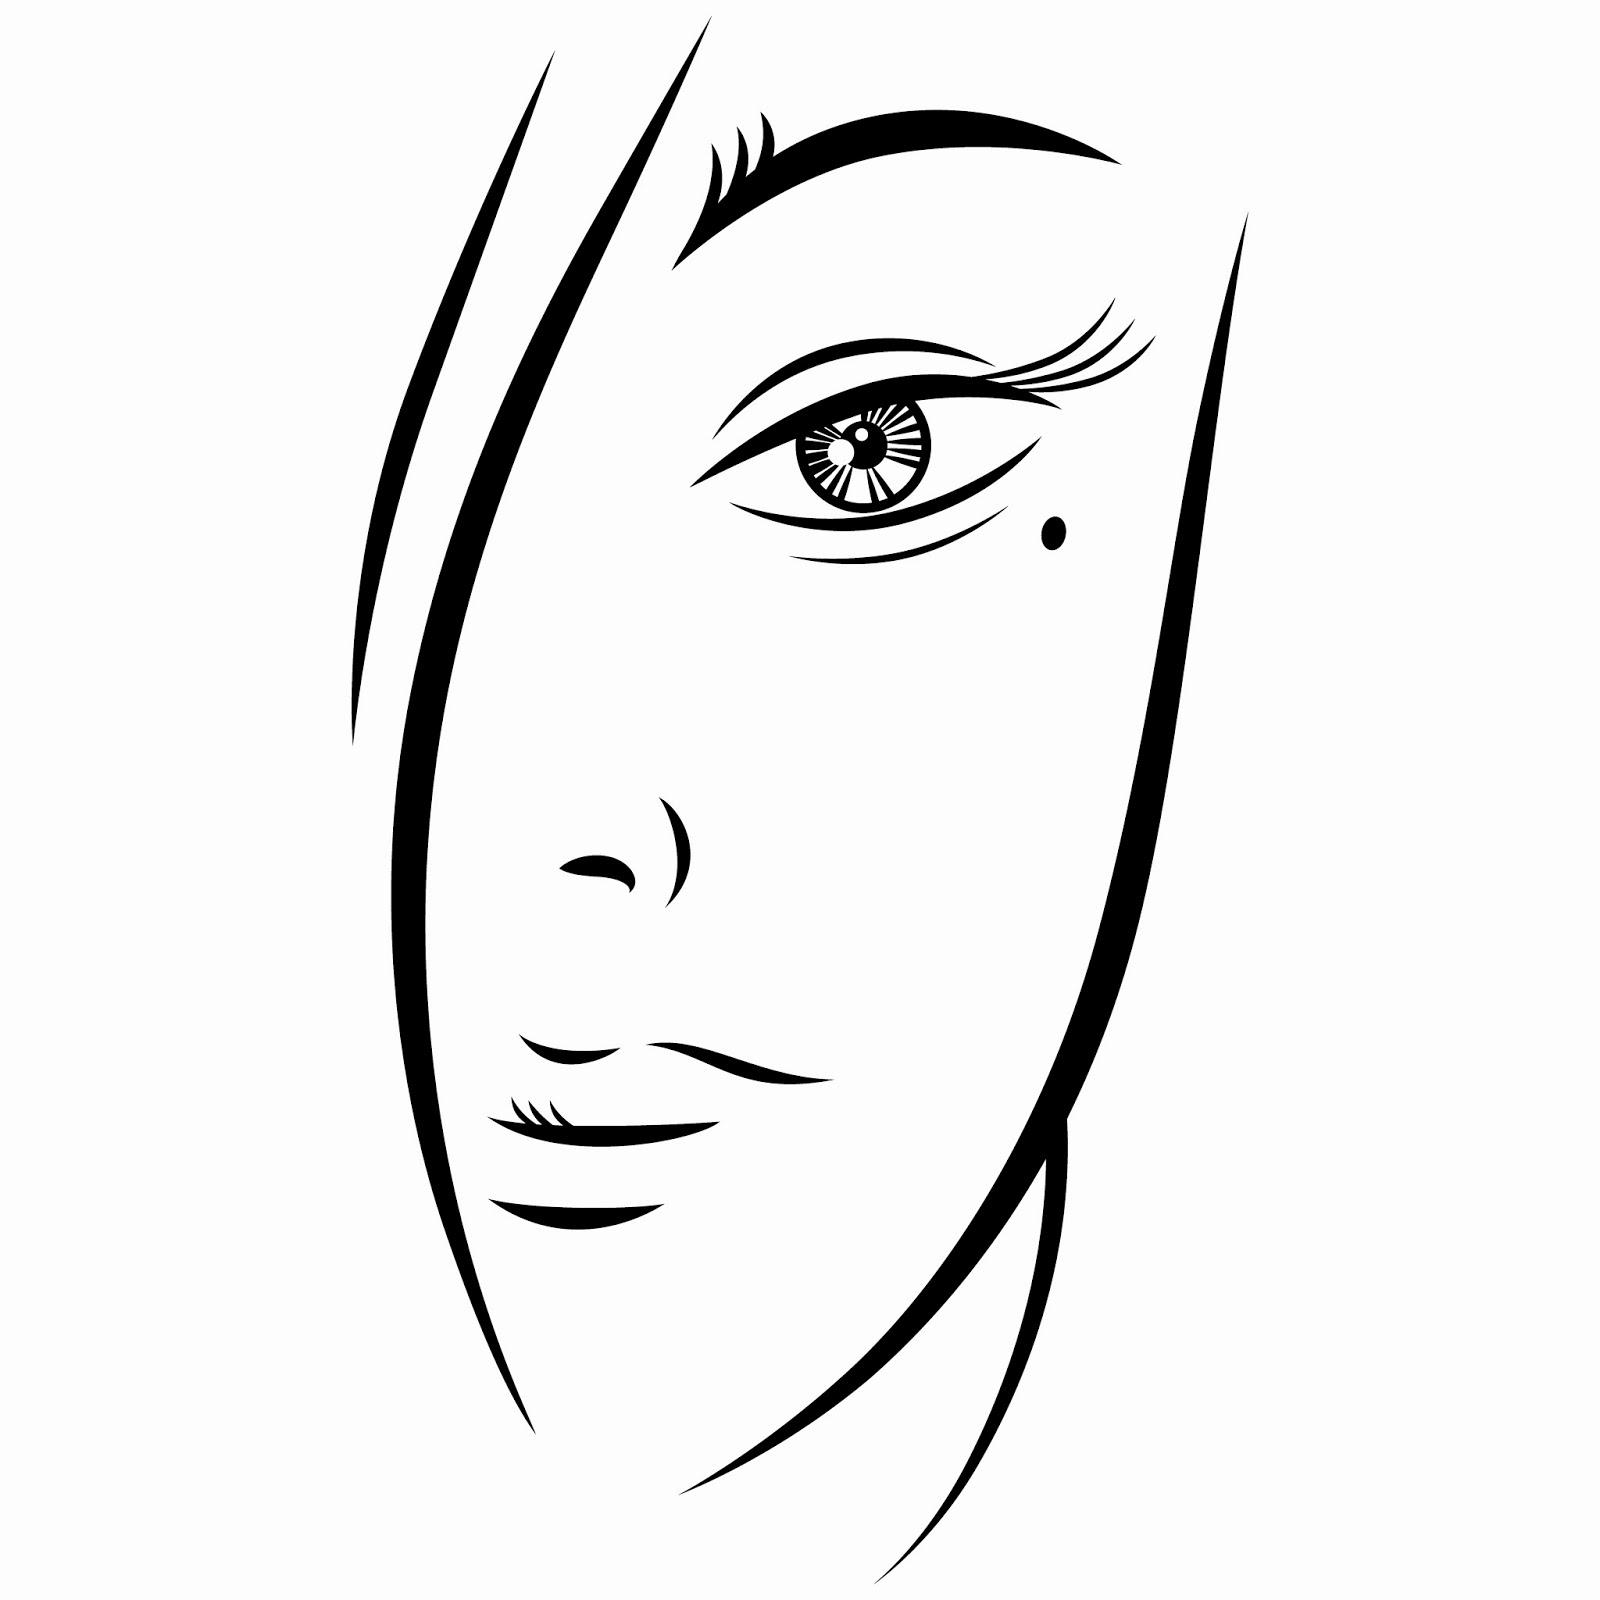 Download Free Eps Vector Illustration  Ink Sketch Of A Person Of Young